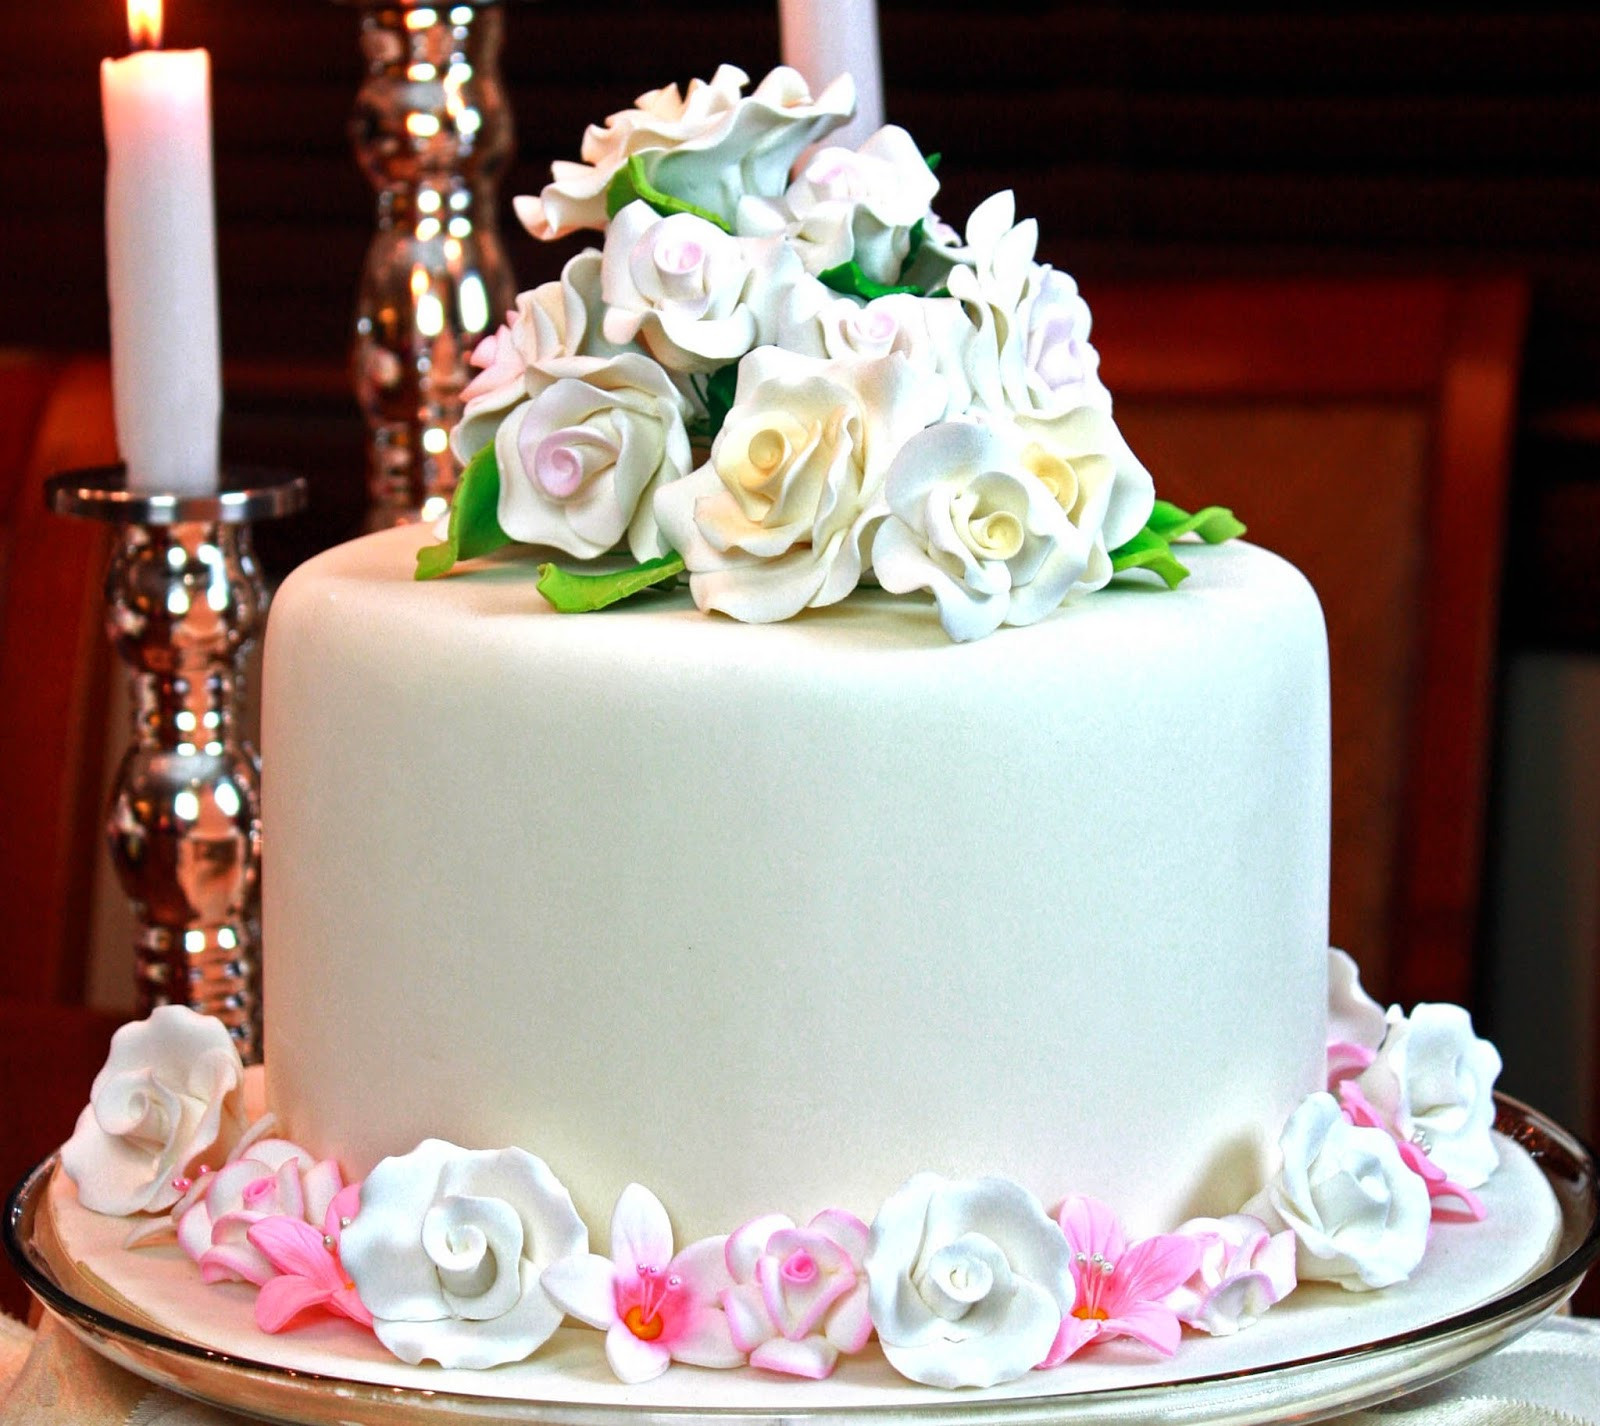 Best ideas about Birthday Cake Photo . Save or Pin Happy Birthday Cake Now.